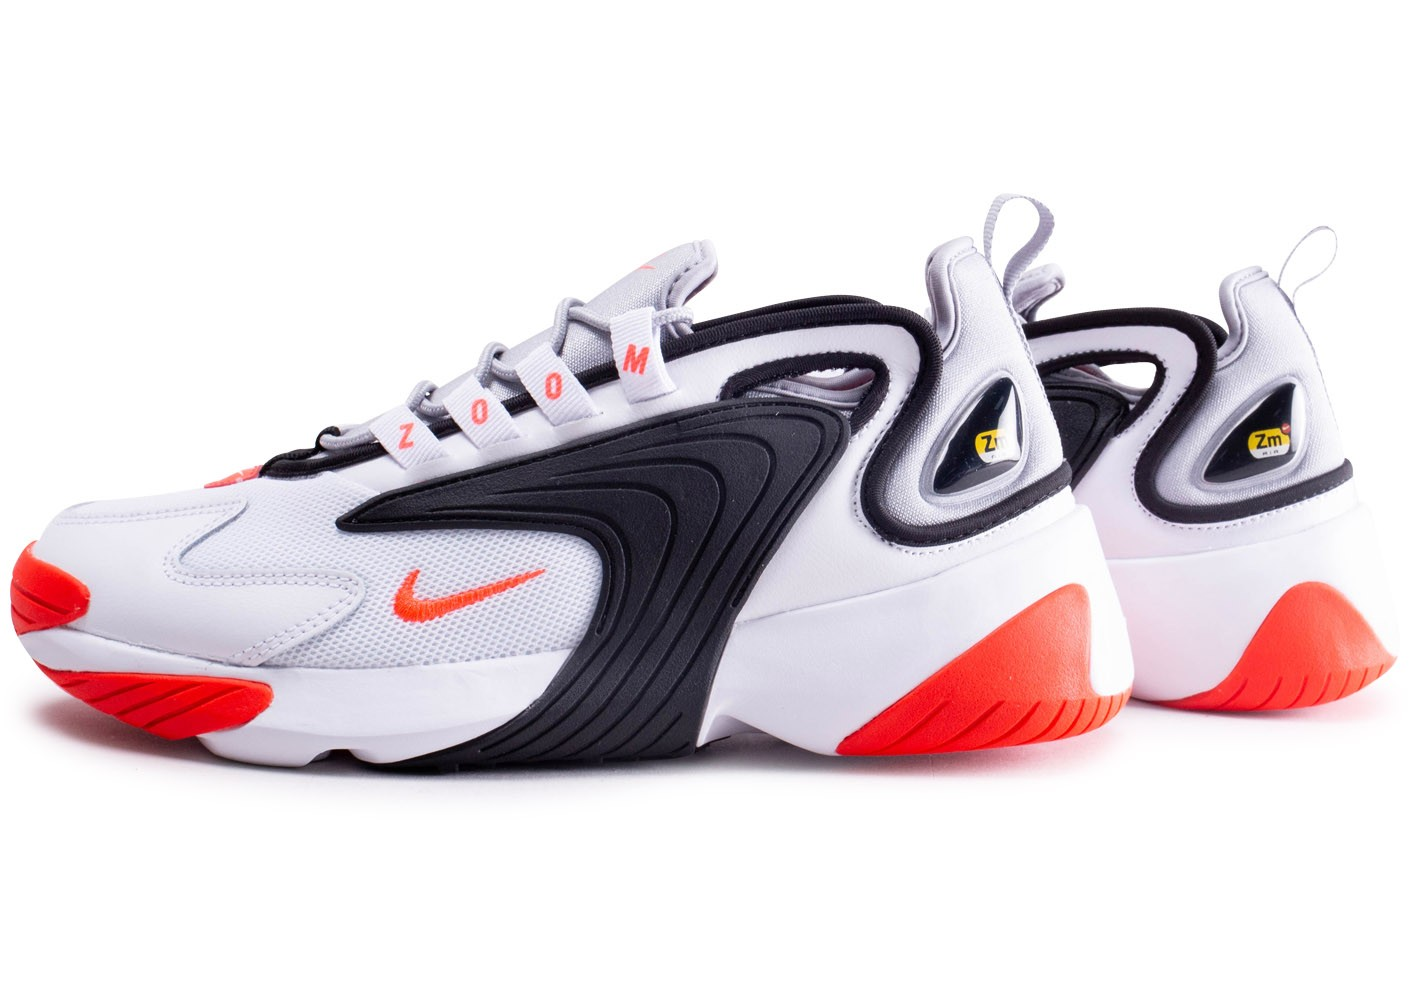 Nike Zoom 2K blanc rouge - Chaussures Baskets homme - Chausport